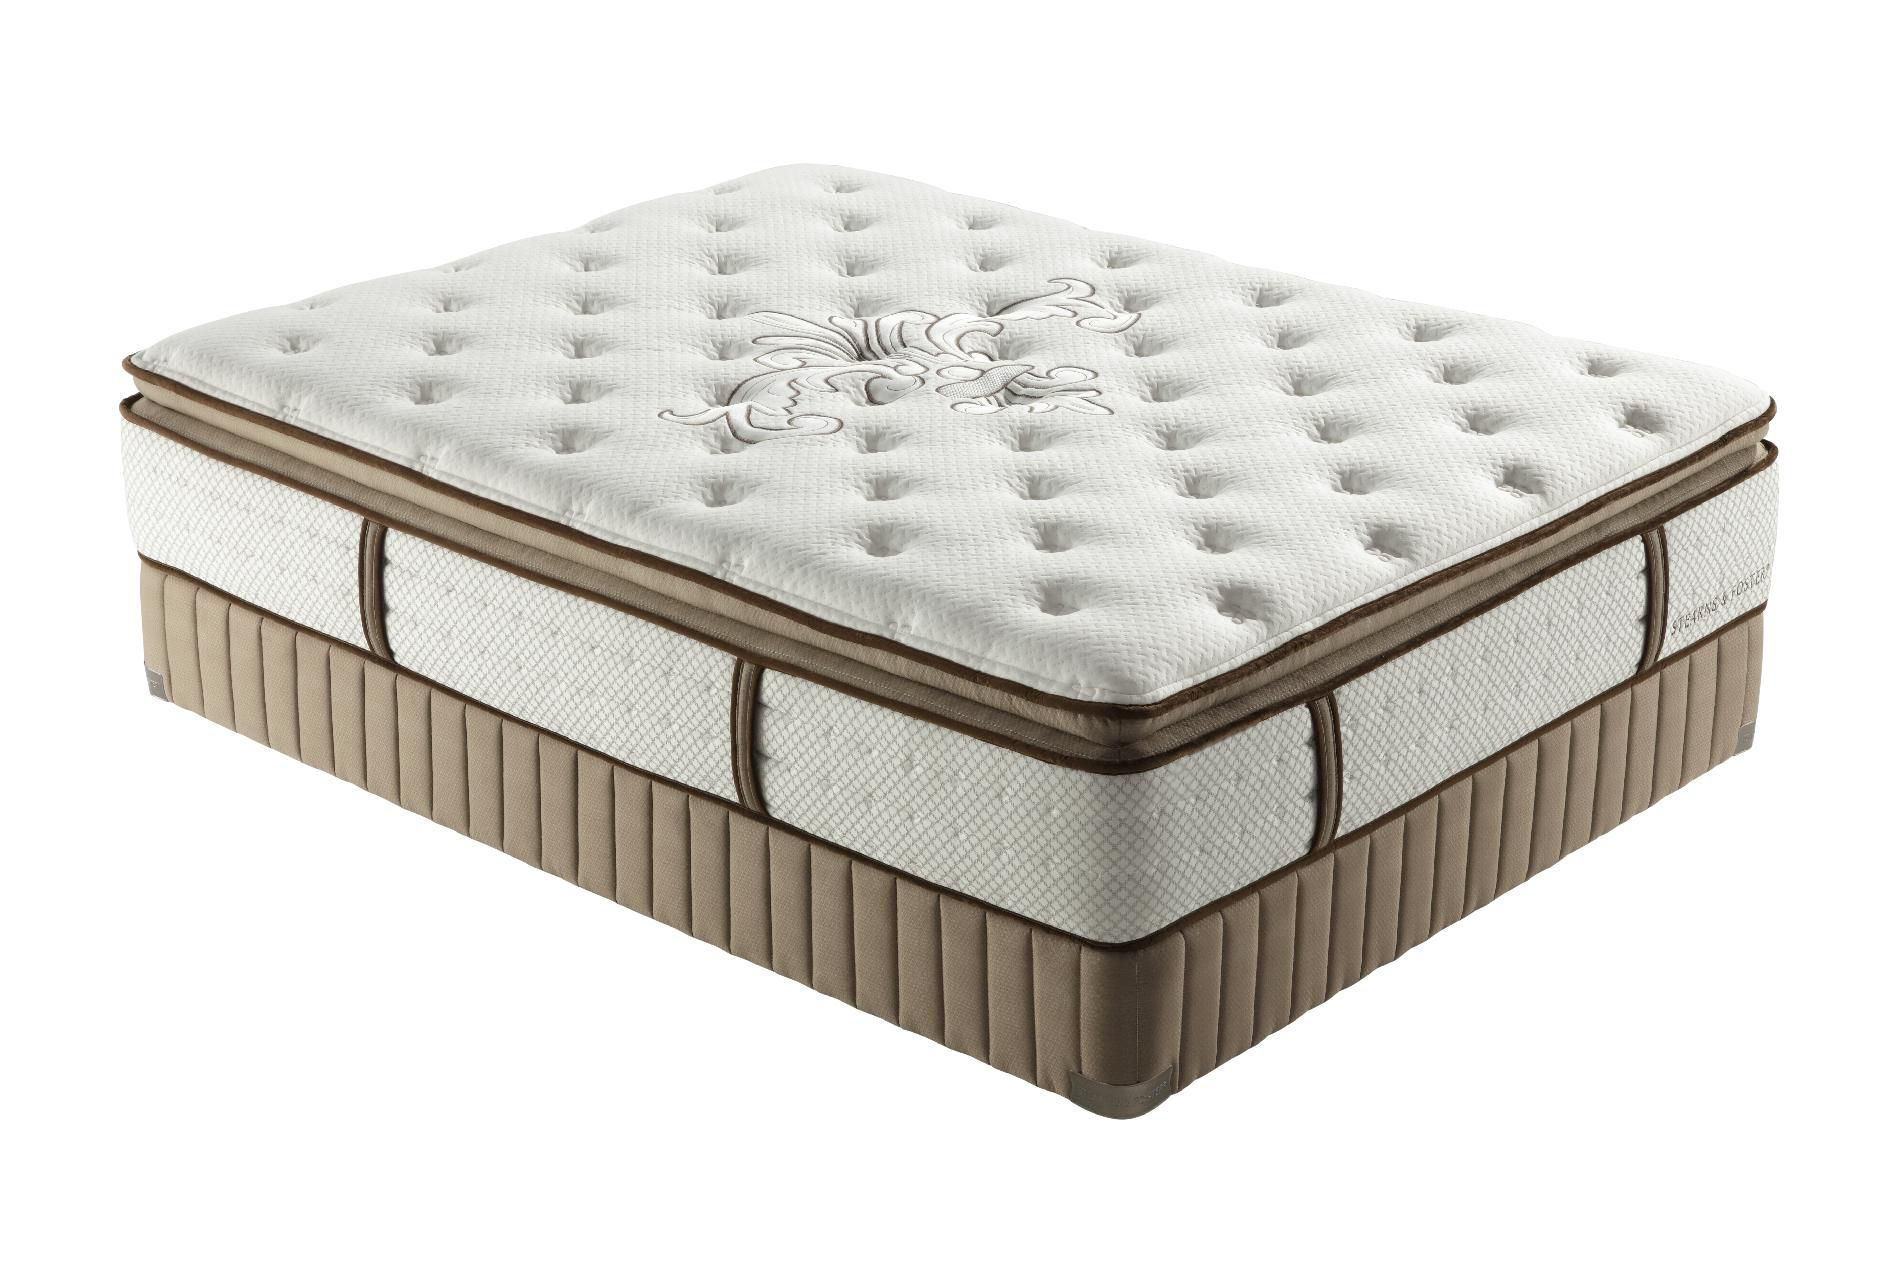 Stearns & Foster Lux Estate Alejandra Plush Euro Pillowtop King Mattress Only